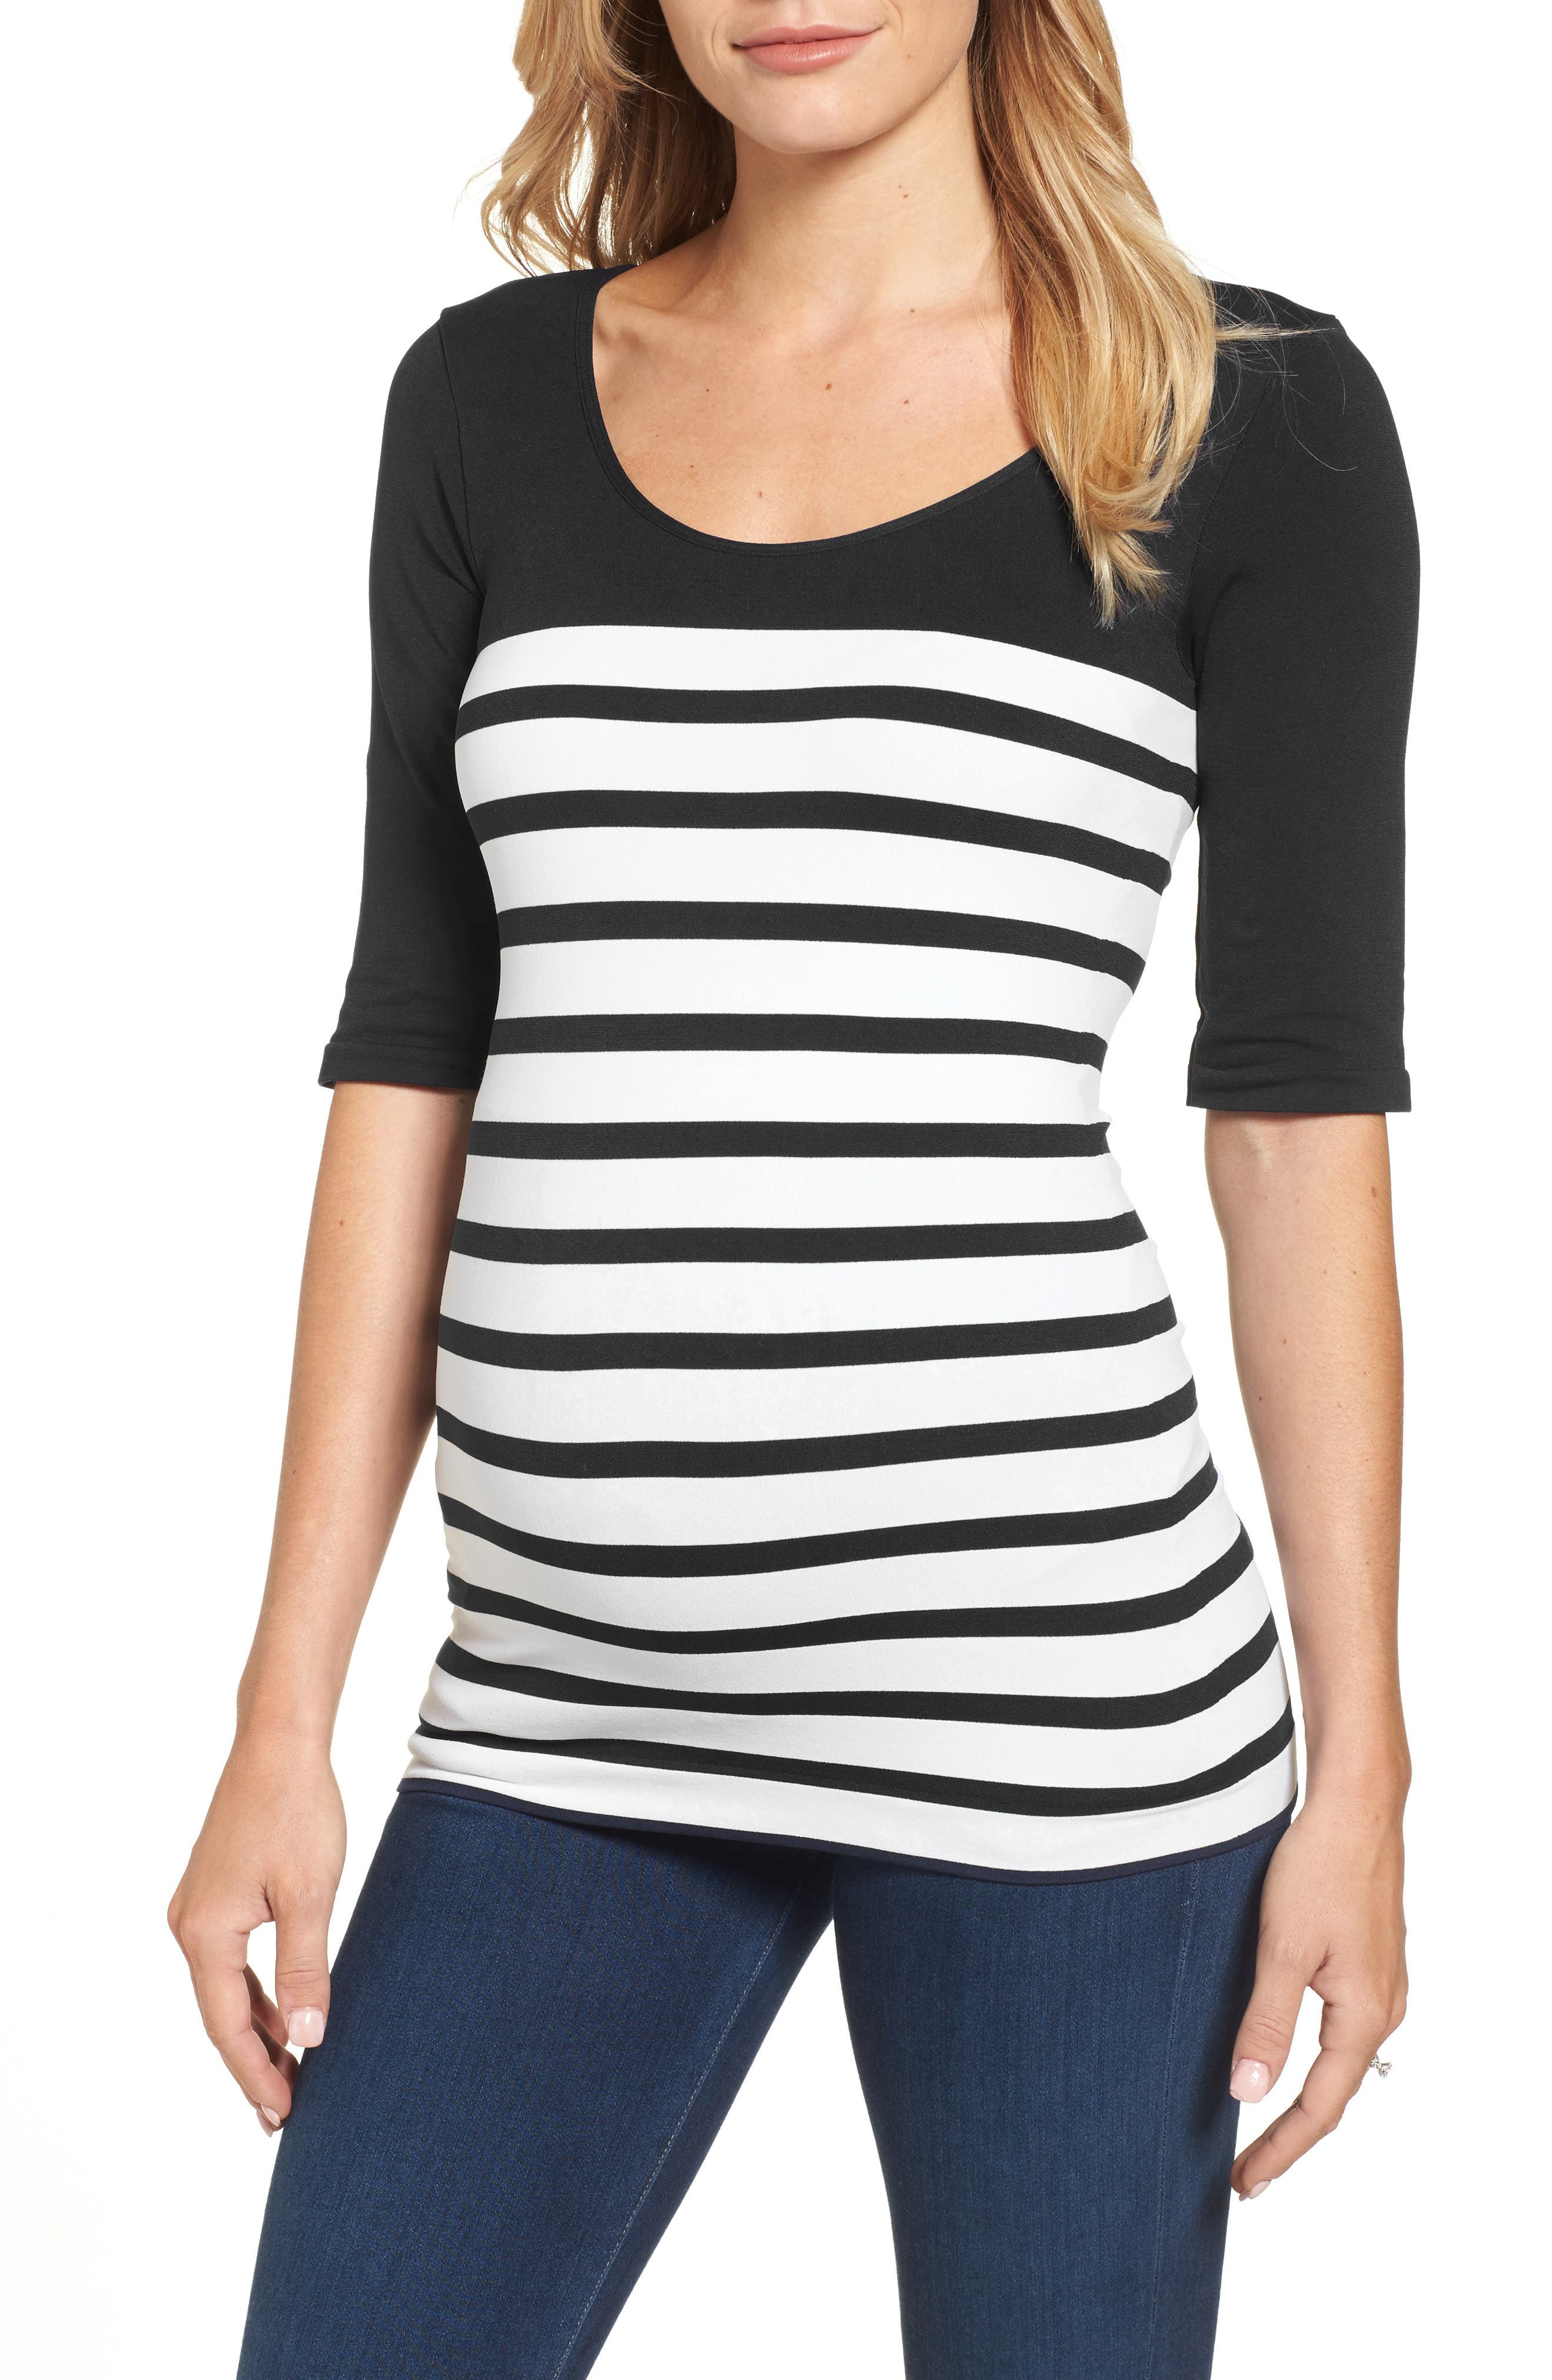 'St. Barts' Ballet Sleeve Maternity Top,                             Main thumbnail 1, color,                             001